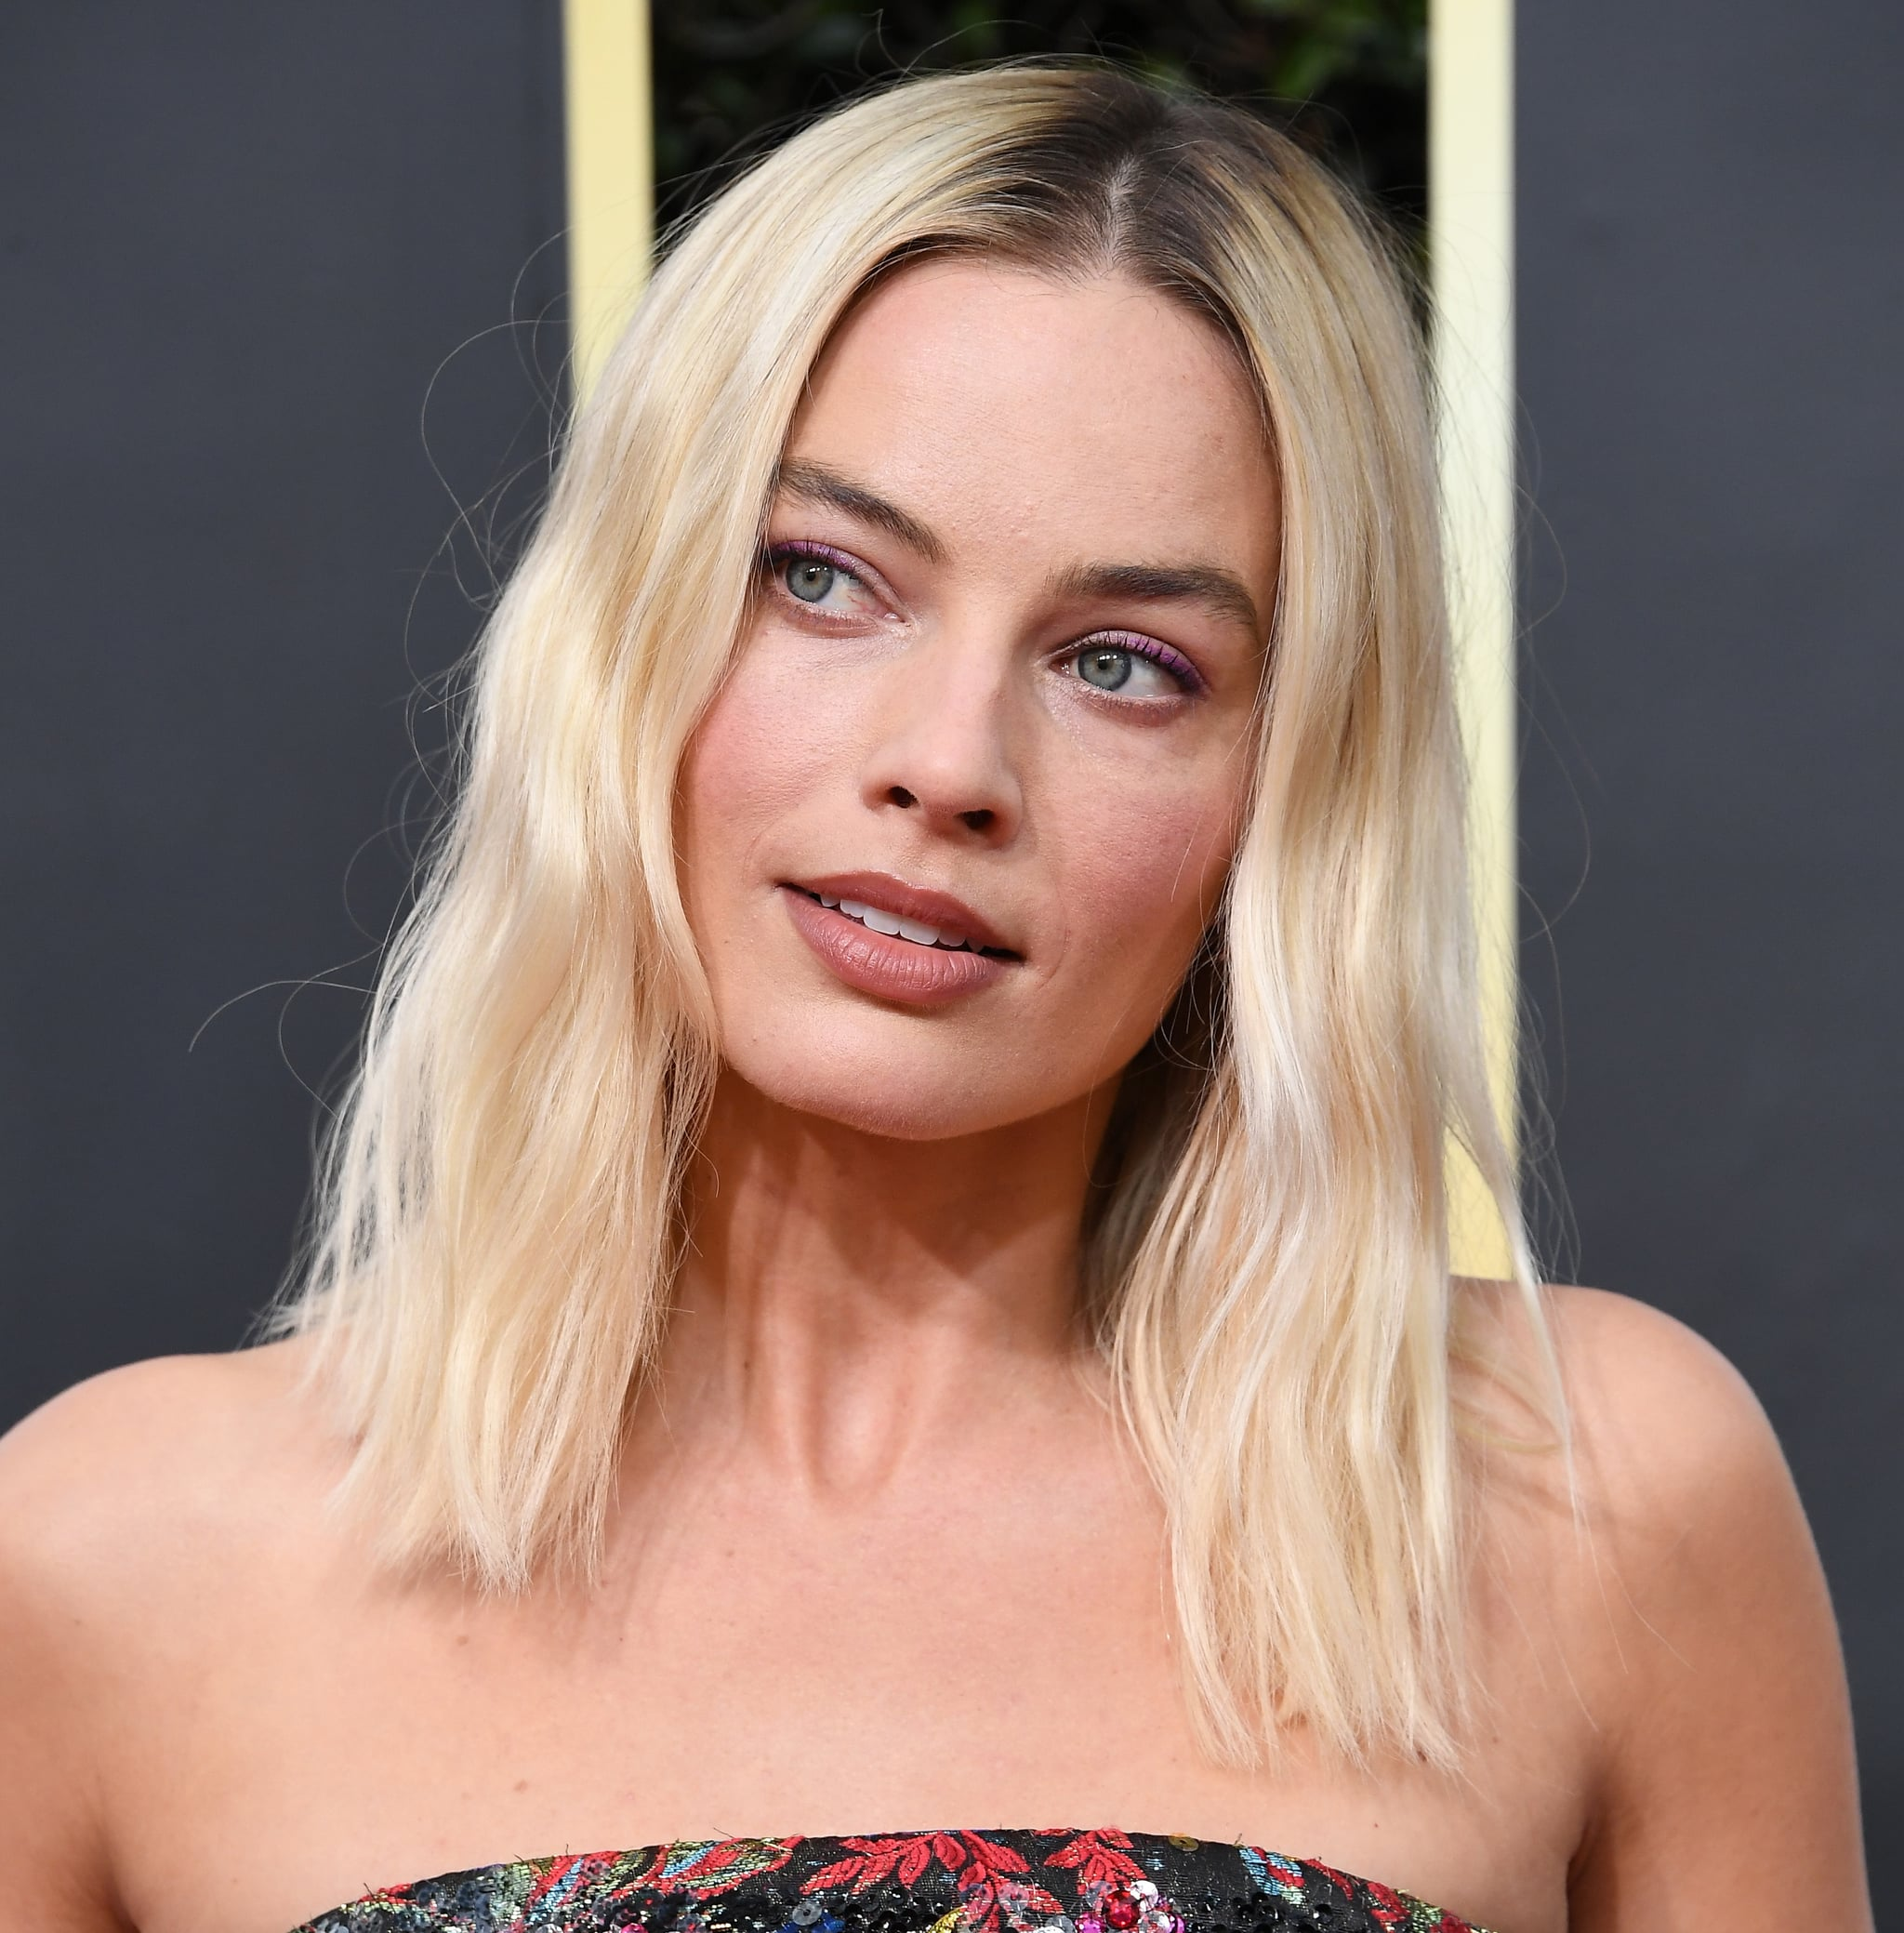 BEVERLY HILLS, CALIFORNIA - JANUARY 05: Margot Robbie arrives at the 77th Annual Golden Globe Awards attends the 77th Annual Golden Globe Awards at The Beverly Hilton Hotel on January 05, 2020 in Beverly Hills, California. (Photo by Steve Granitz/WireImage)